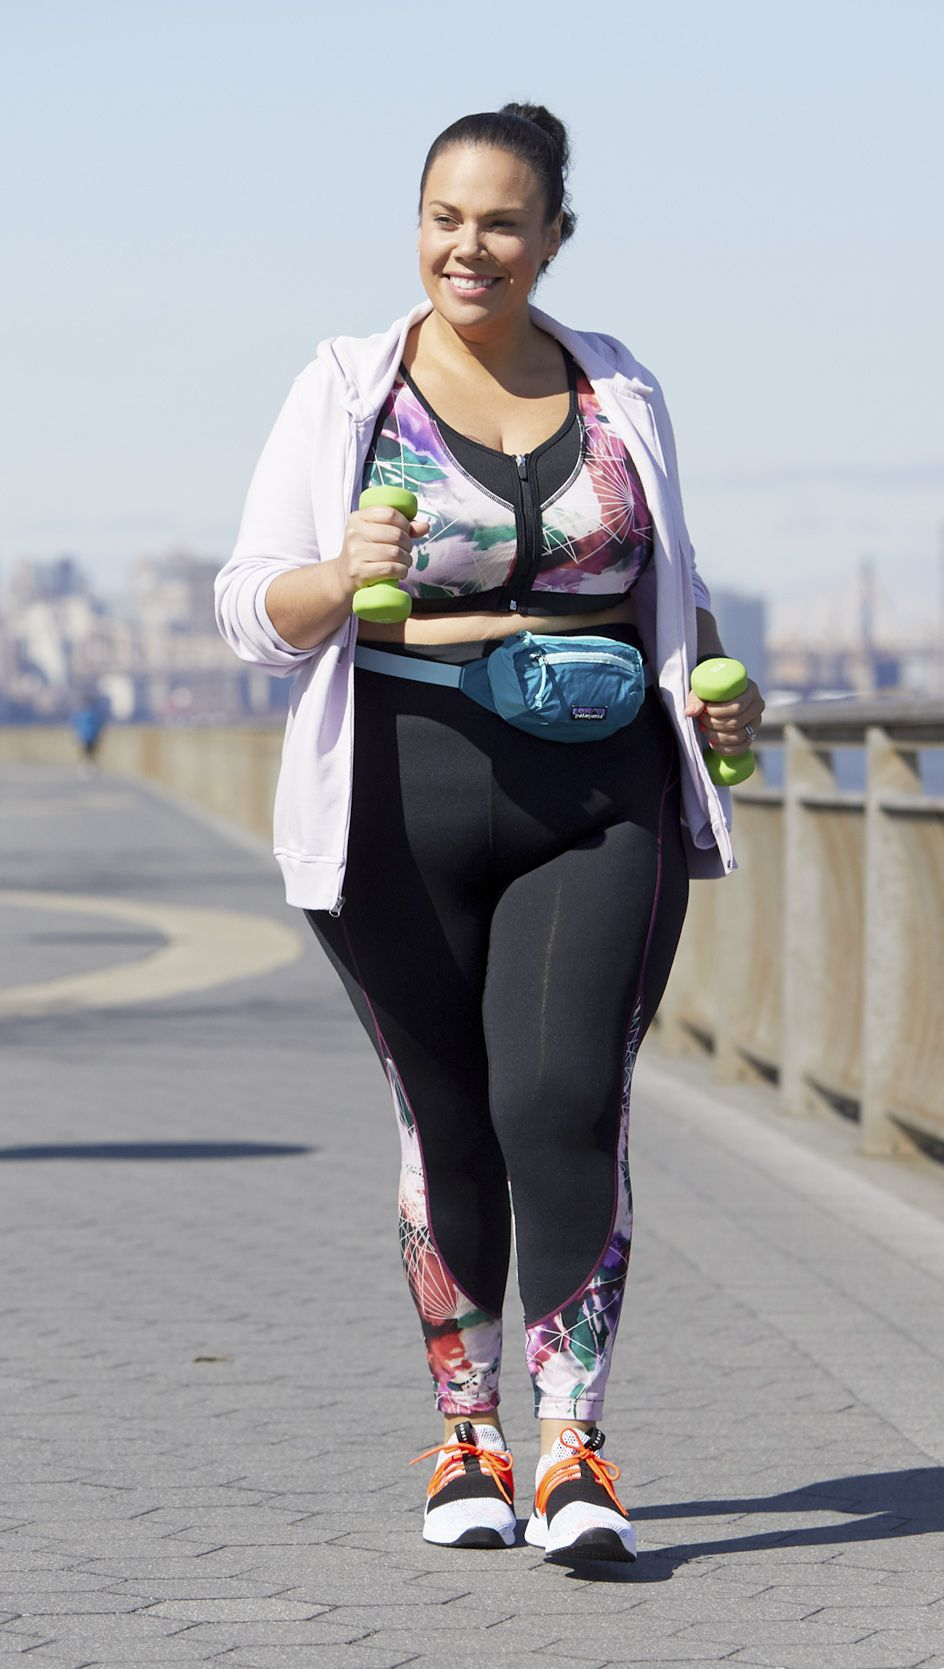 ee3f79a76fb Plus Size Fitness  Introducing Dia Co Active wear